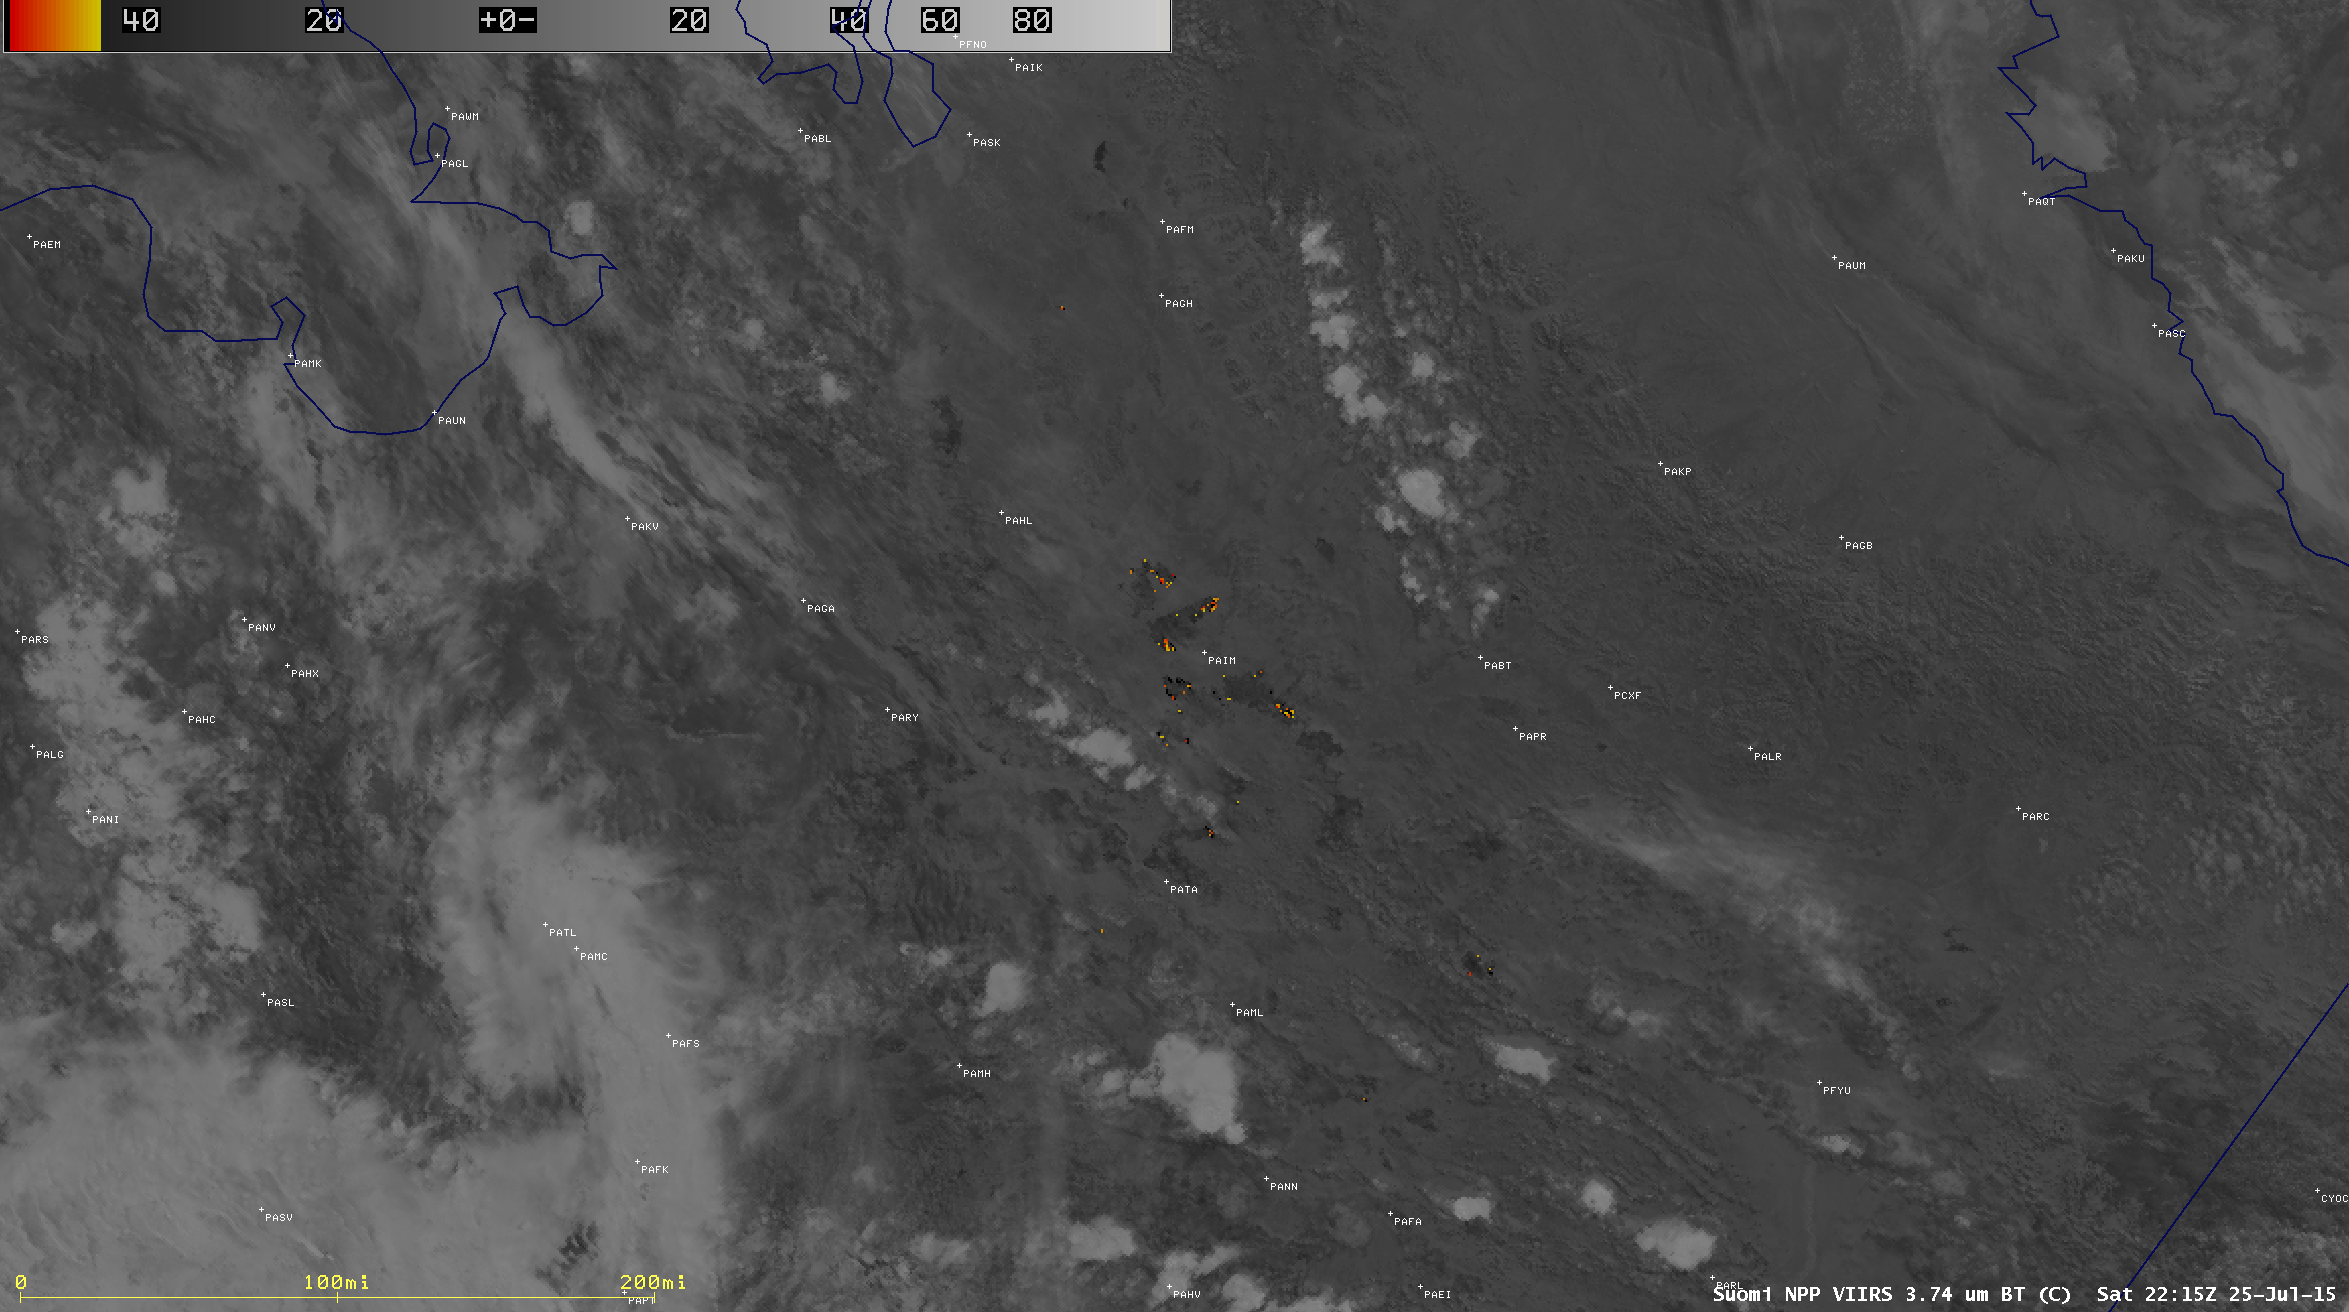 Suomi NPP VIIRS shortwave IR images [click to play animation]